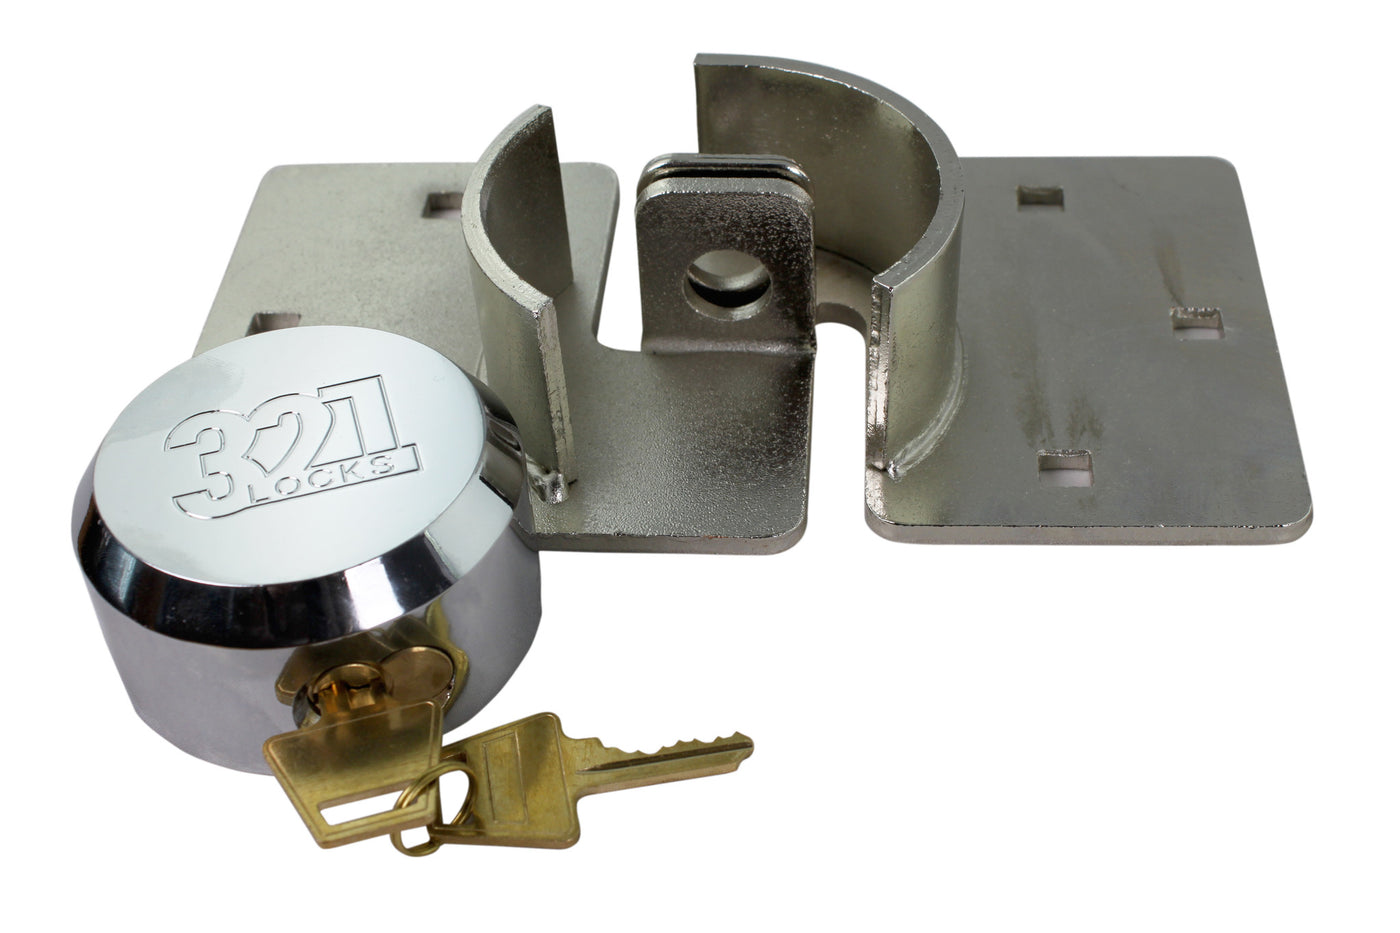 Cargo Van Locks : Cargo trailer lock van door with hasp locks